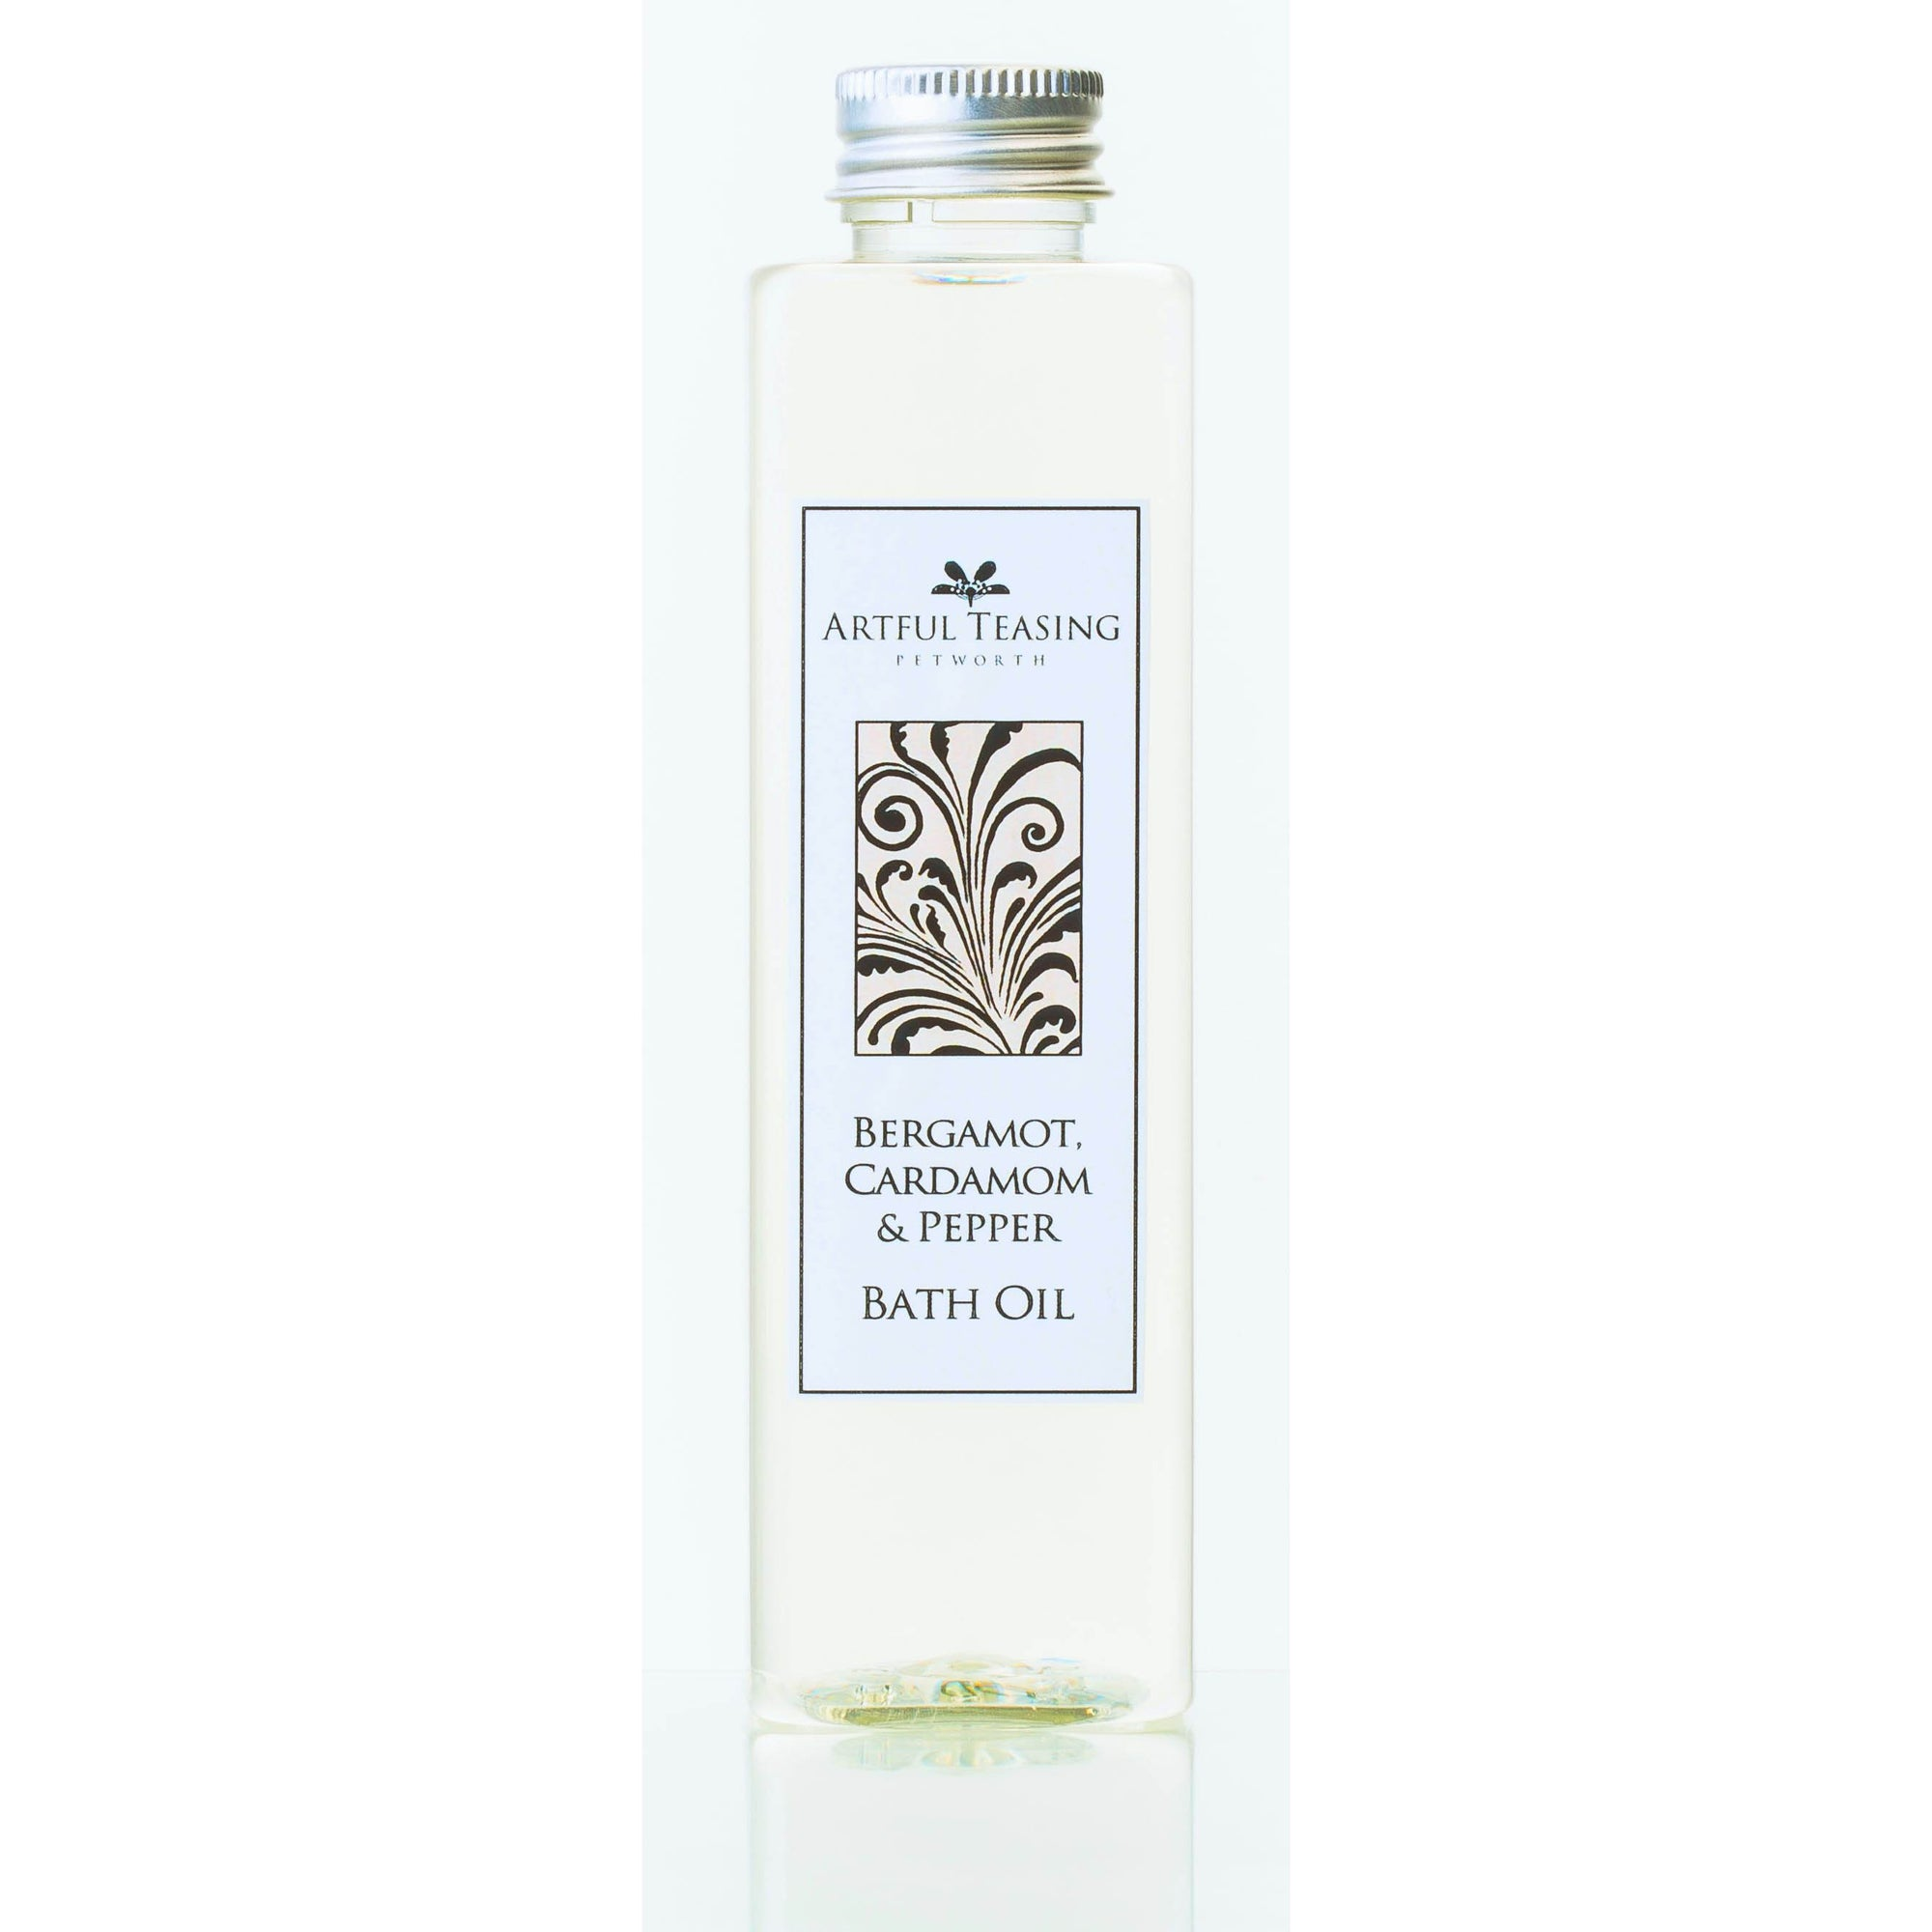 Bergamot, Cardamom & Pepper Bath Oil 200ml